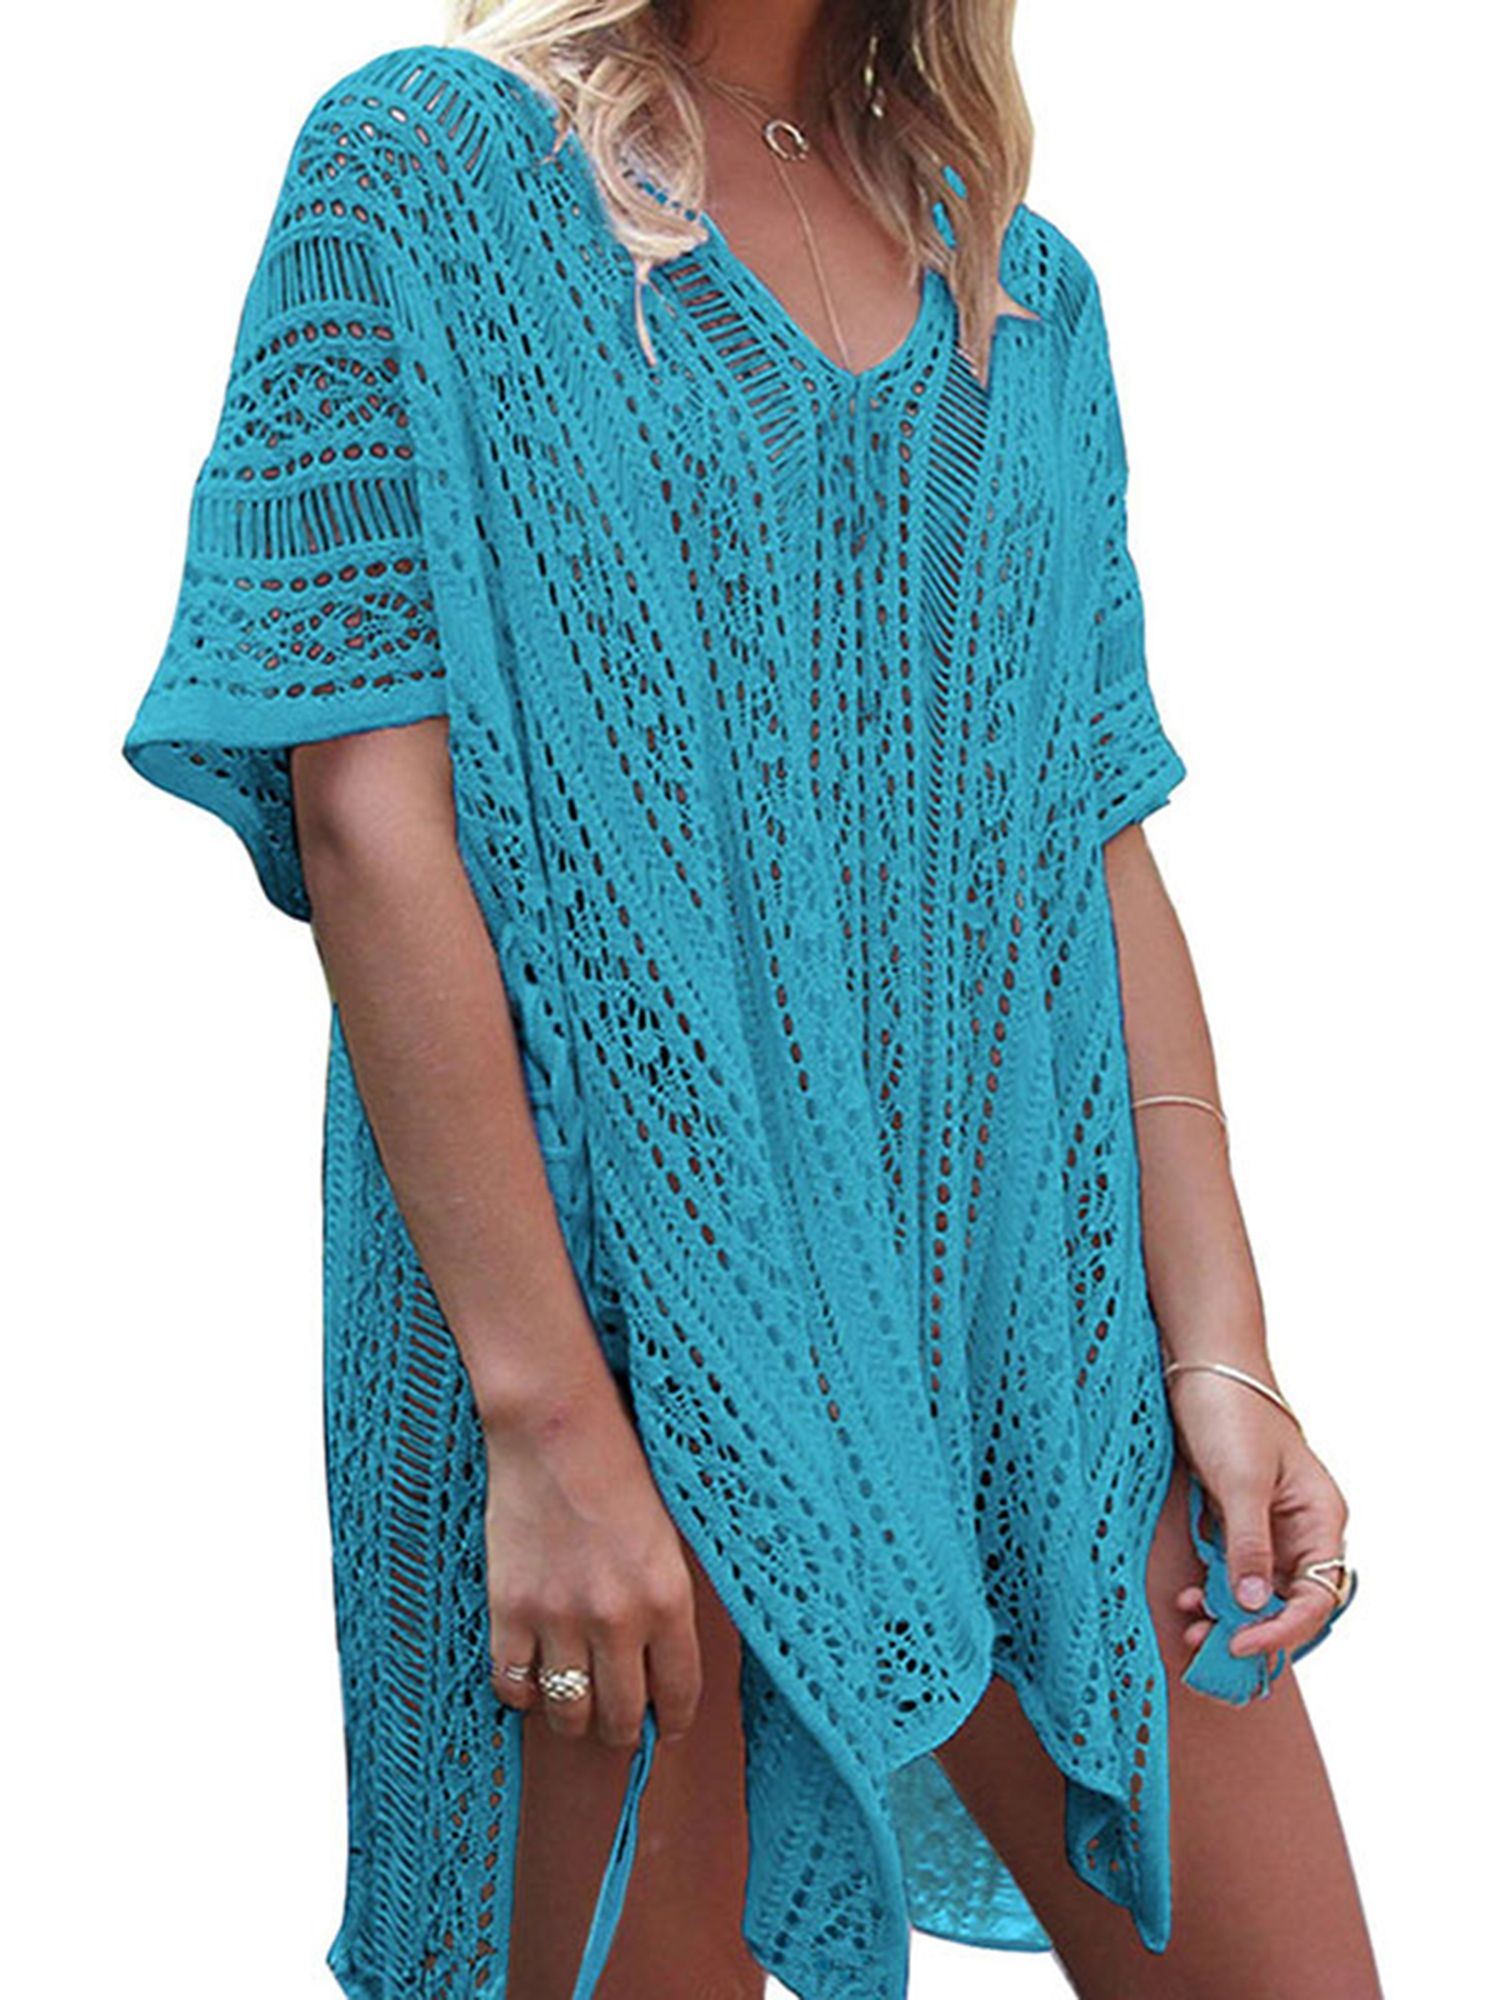 c2b19986dd Swim Cover ups Women Knit Lace Crochet Bikini Beachwear V-neck Hollow Out  Loose Beach Dress Tops Summer Bathing Suit#Crochet, #Lace, #Beachwear